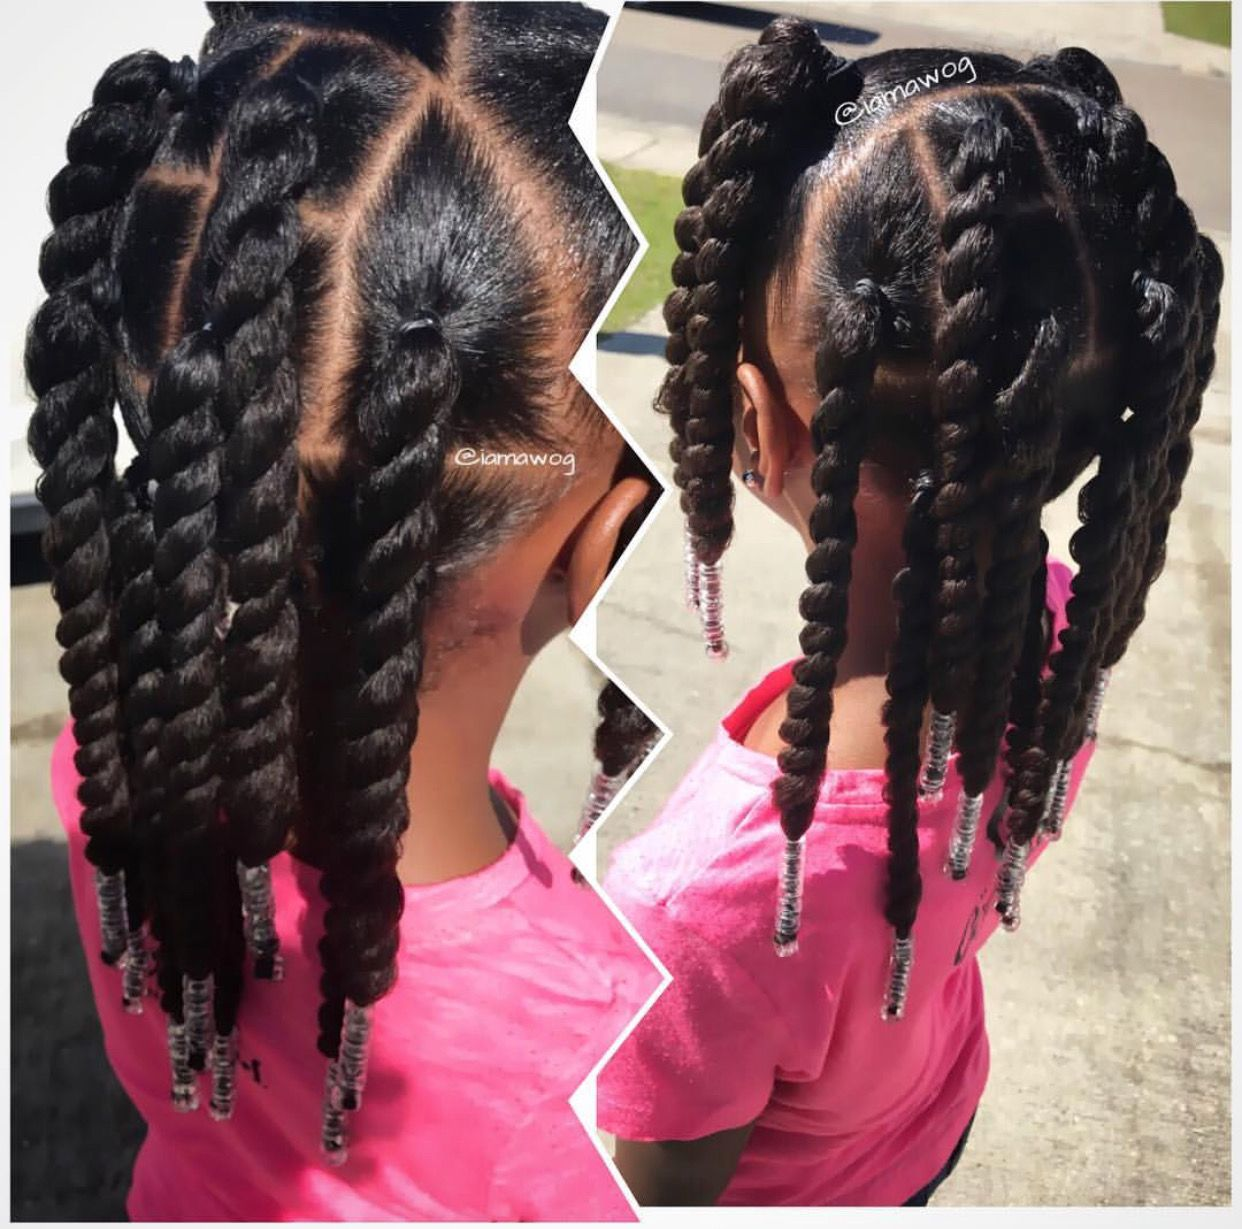 Pin By A Farrar On Hair Styles For African American Girls Natural Hairstyles For Kids Kids Hairstyles Girls Lil Girl Hairstyles